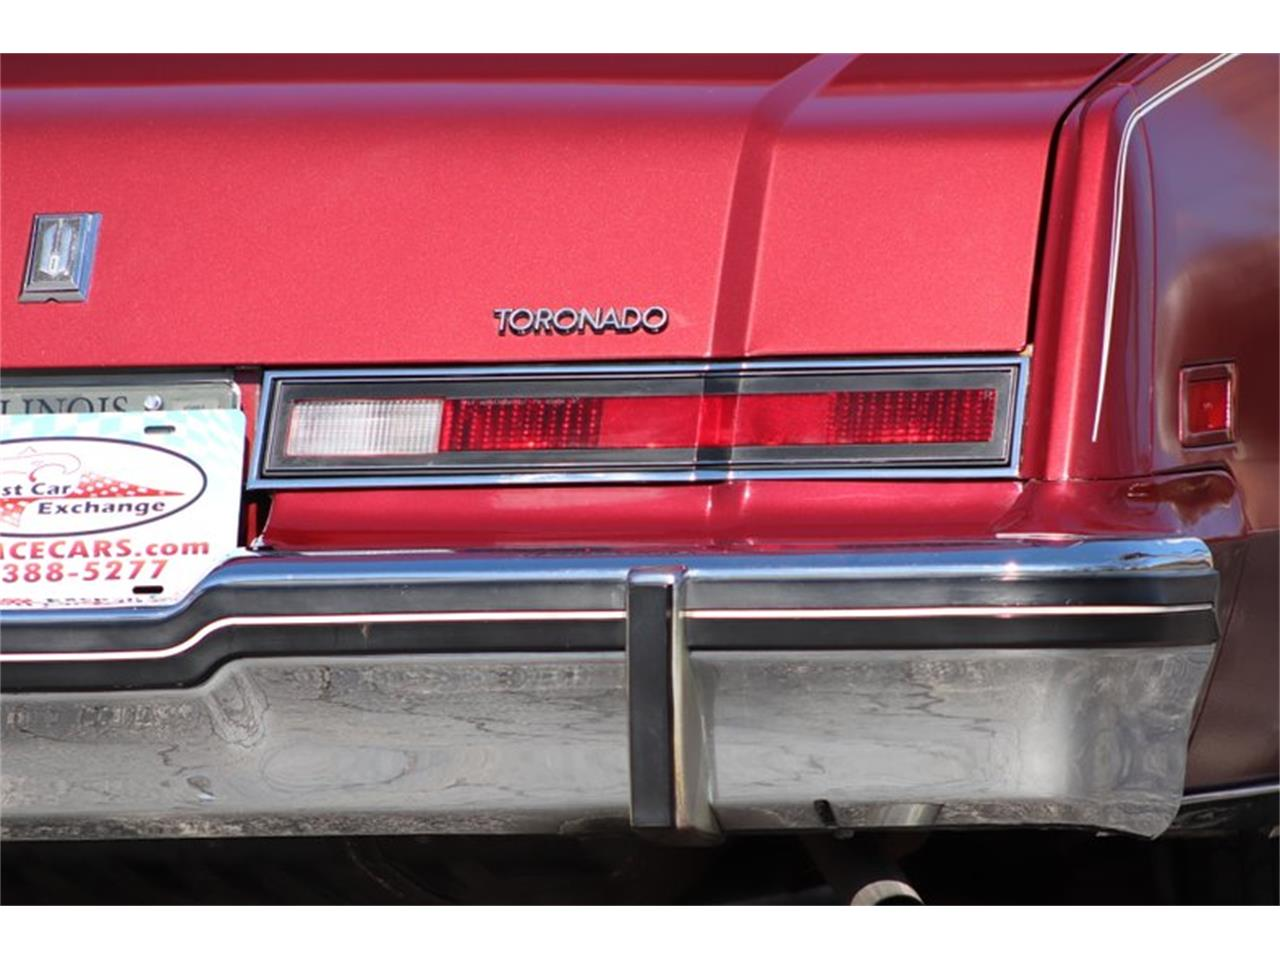 Large Picture of 1982 Oldsmobile Toronado located in Alsip Illinois - $8,900.00 Offered by Midwest Car Exchange - PPX3